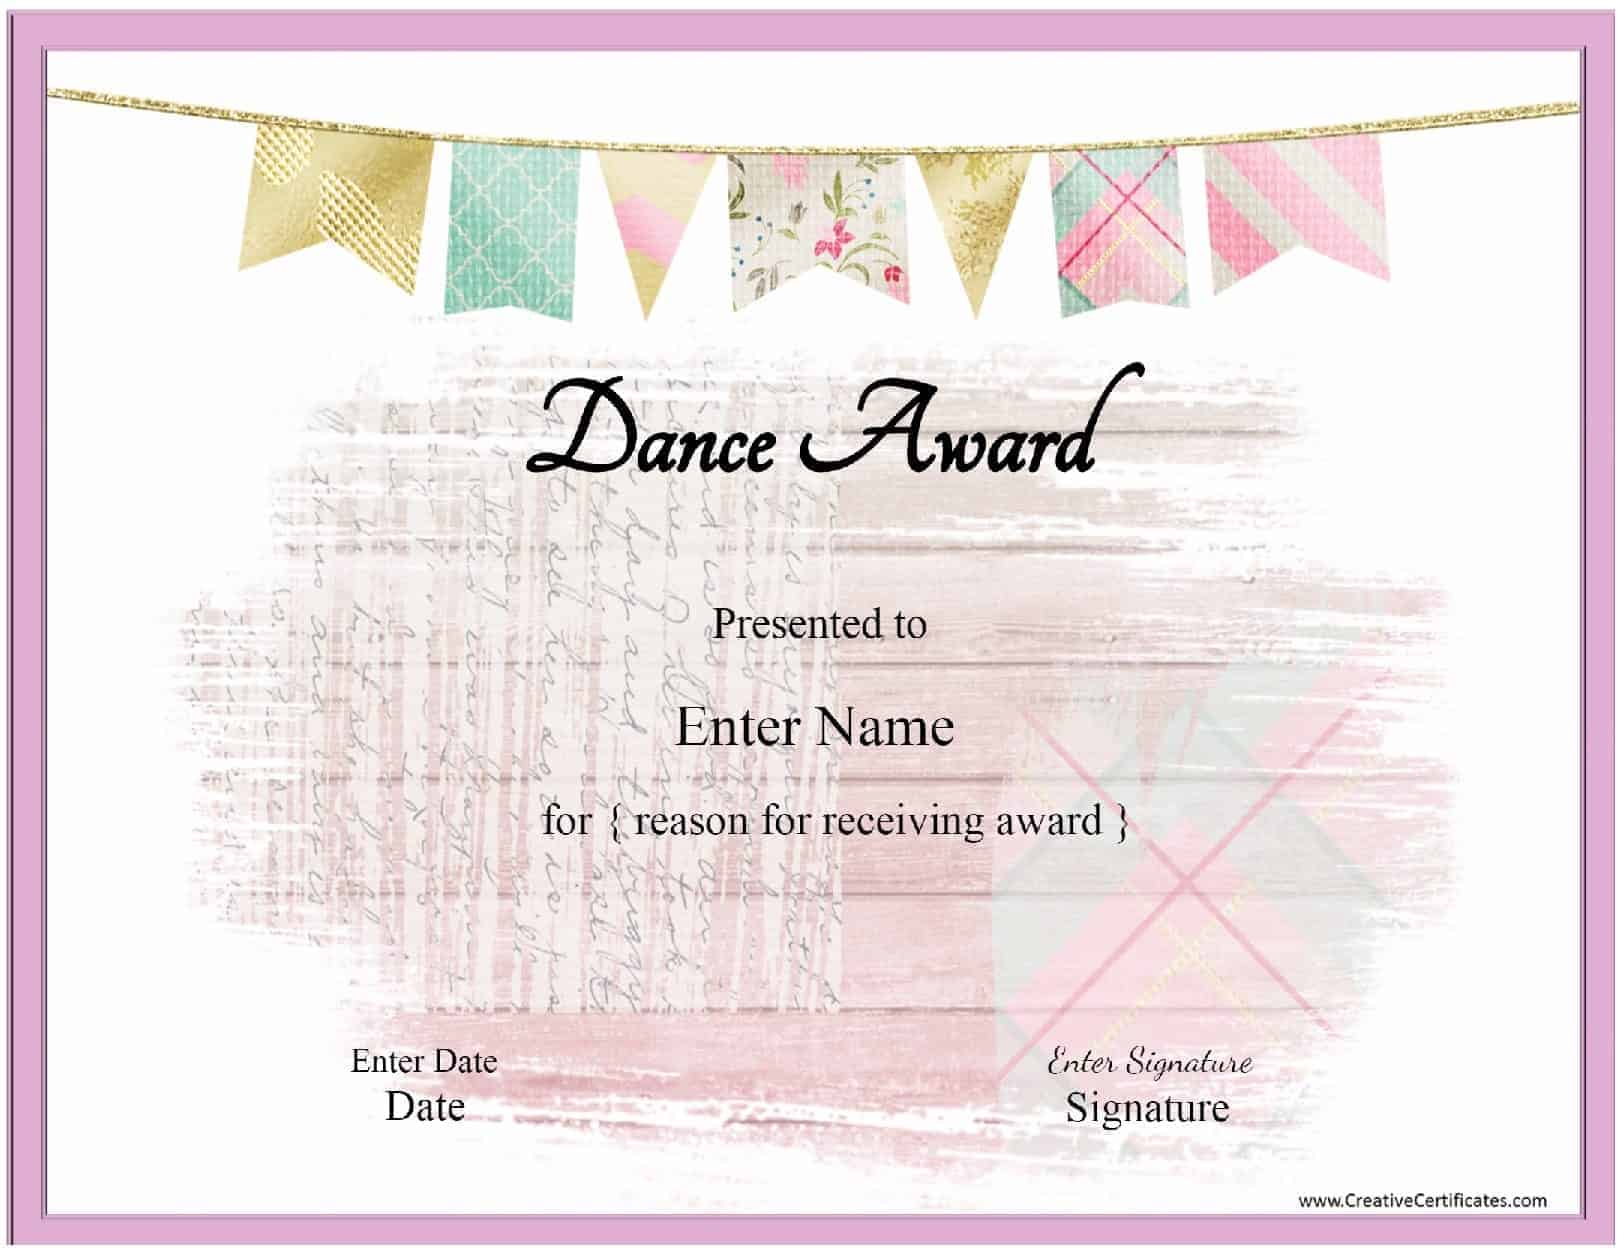 Free dance certificate template customizable and printable dance certificate template with a pink banenr and a pink frame xflitez Gallery